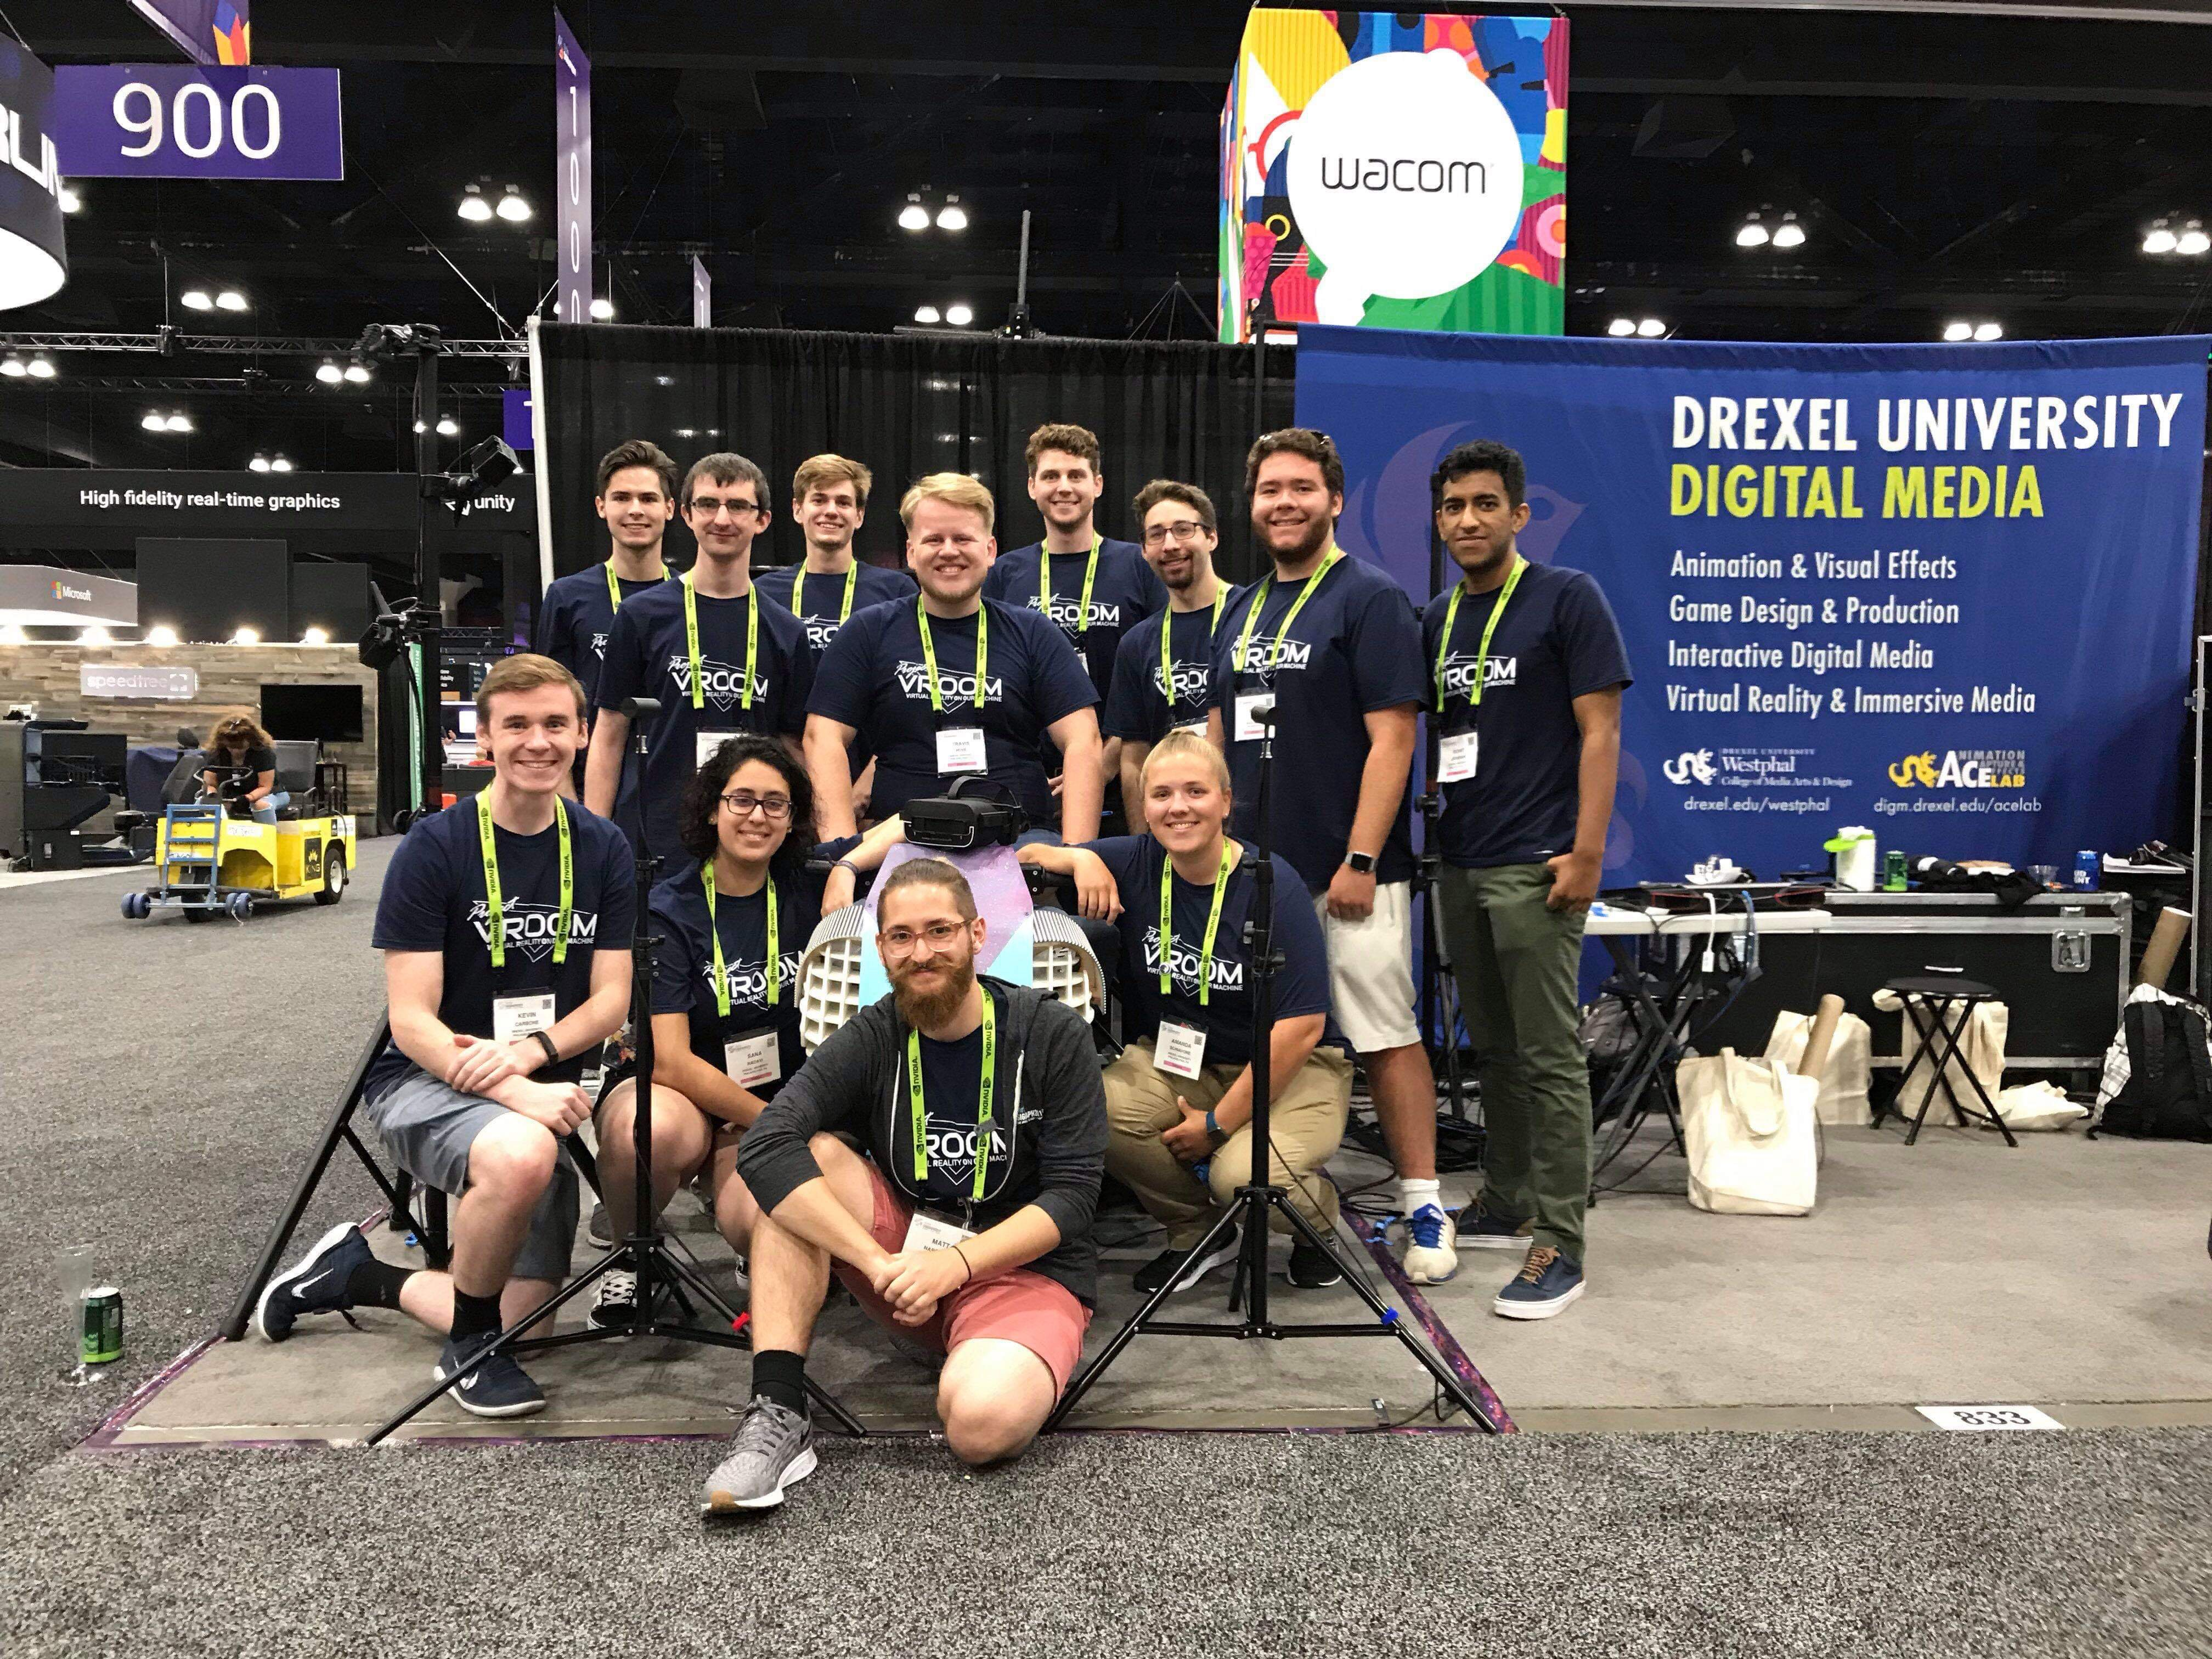 Project VROOM at SIGGRAPH 2019 Booth